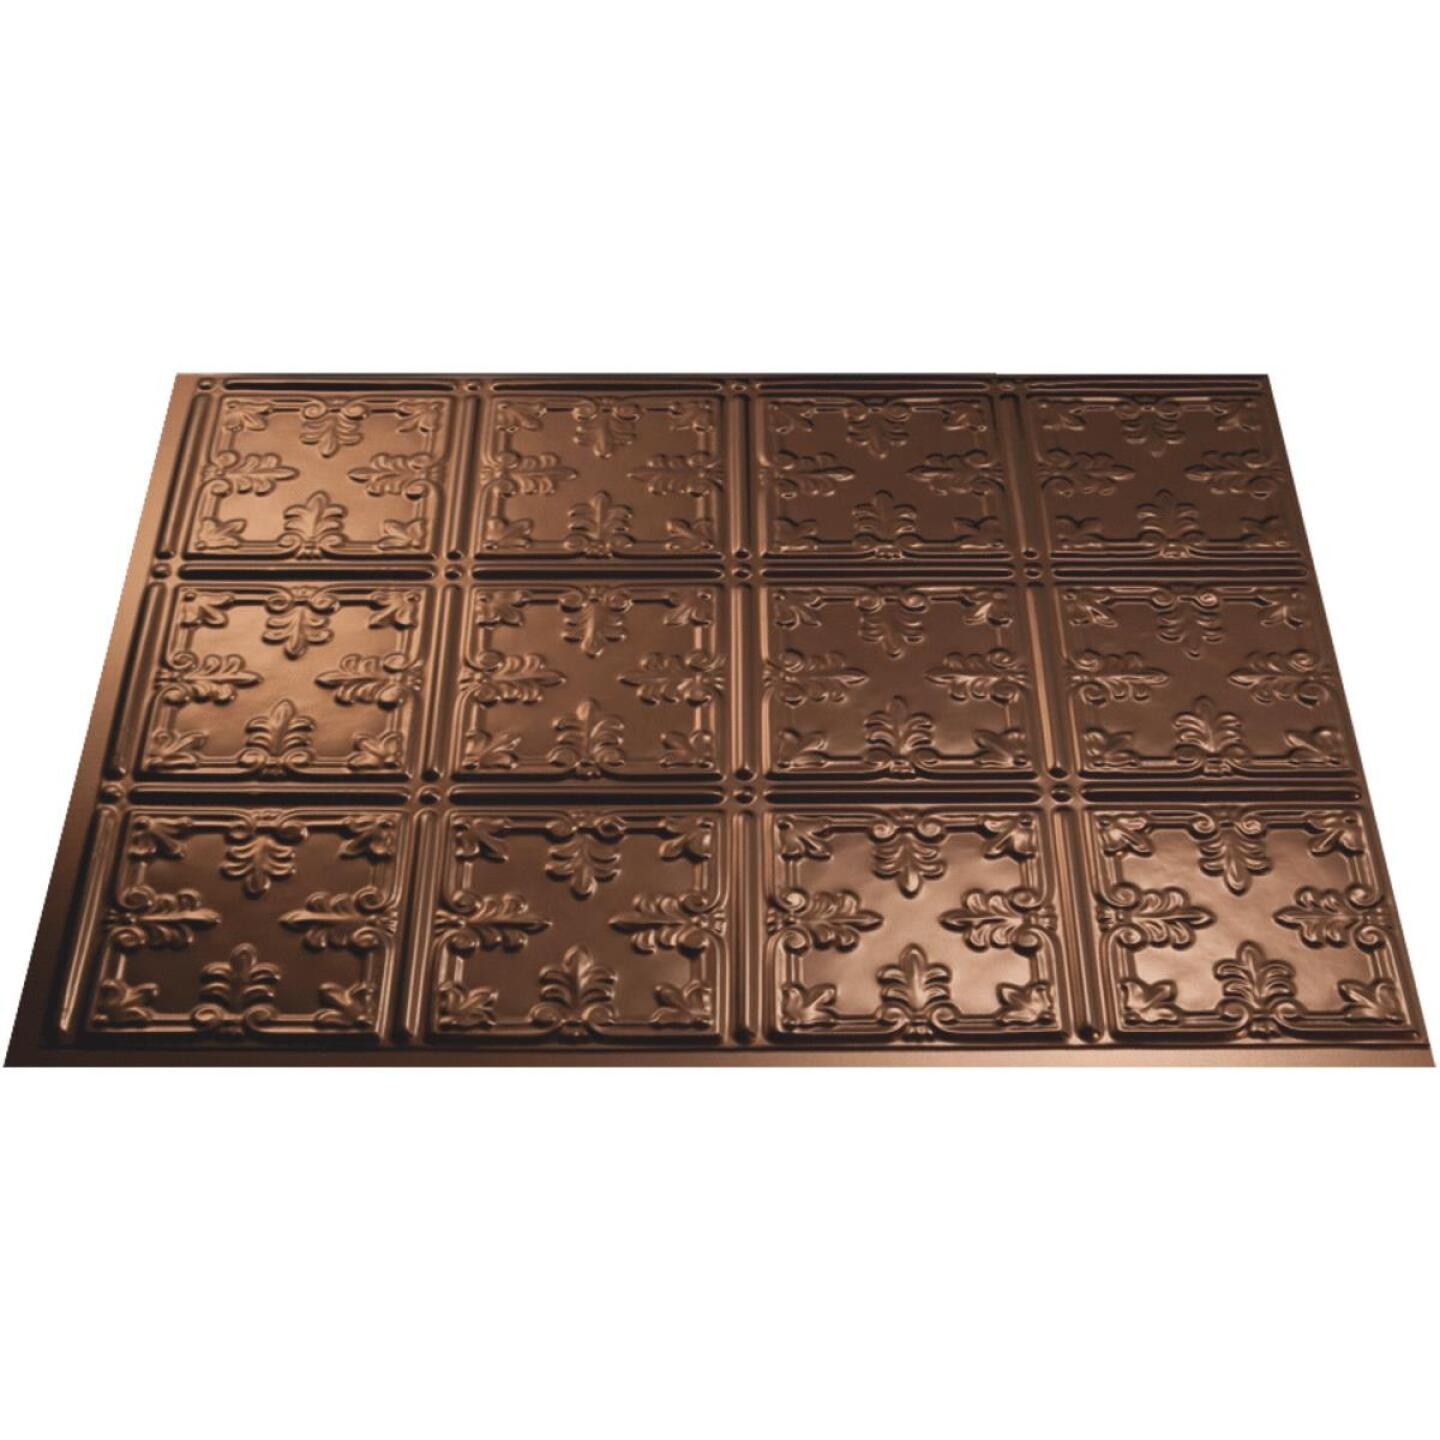 Fasade 18 In. x 24 In. Thermoplastic Backsplash Panel, Oil-Rubbed Bronze Traditional 10 Image 1